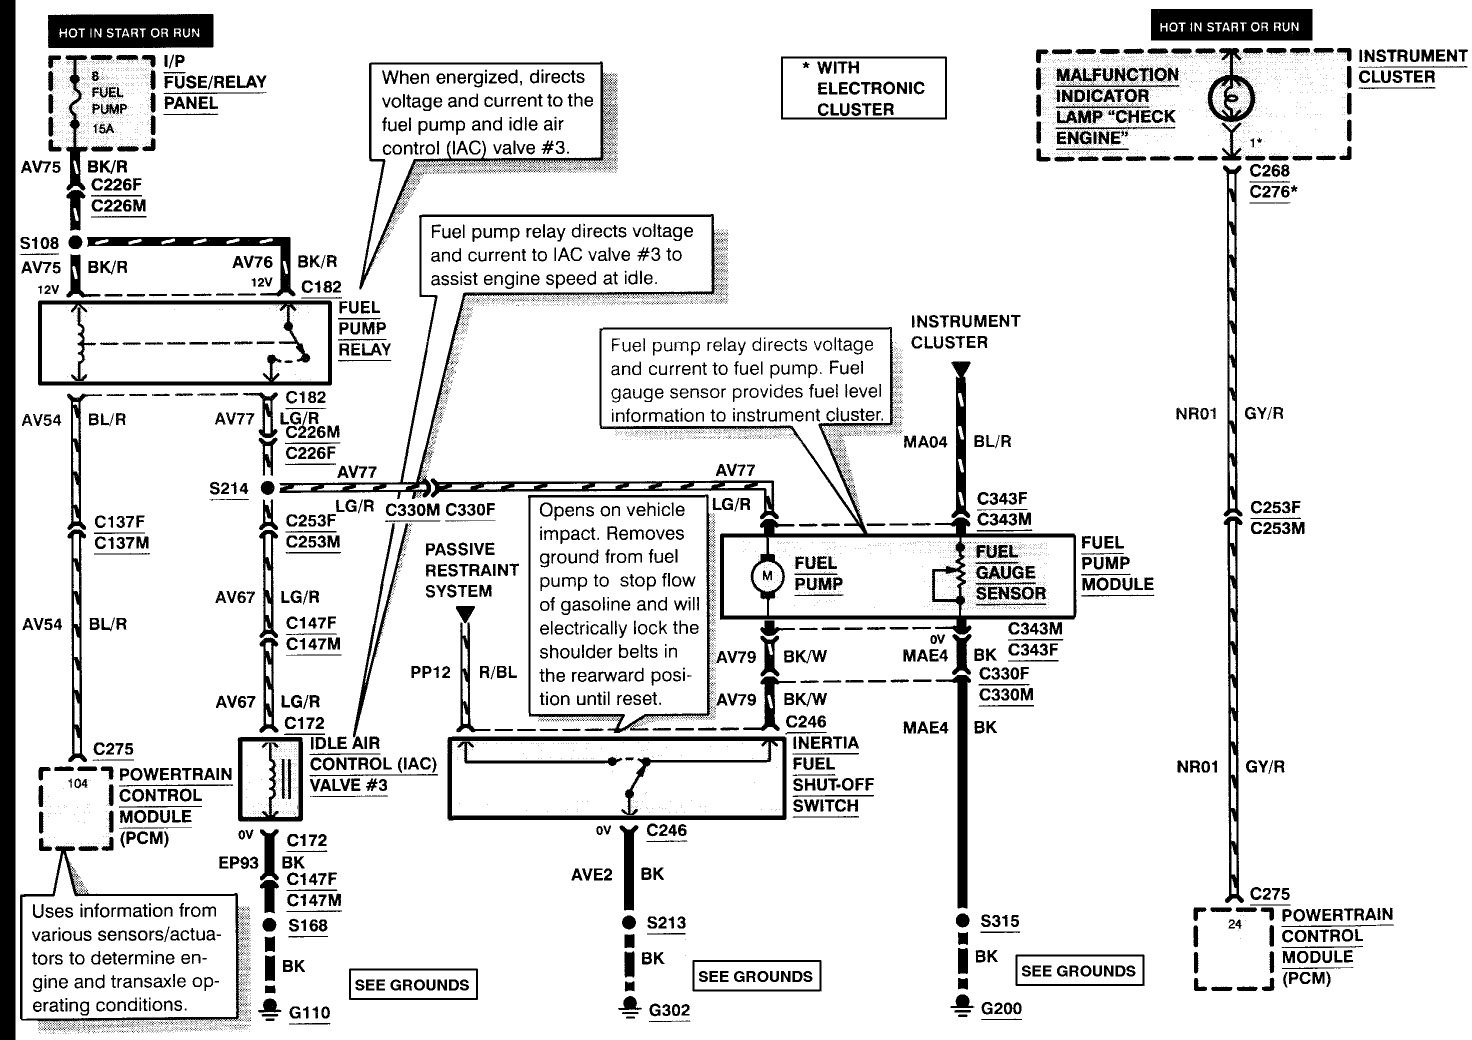 DIAGRAM] 1993 Mercury Villager Radio Wiring Diagram FULL Version HD Quality Wiring  Diagram - 111120.ACCNET.FRaccnet.fr